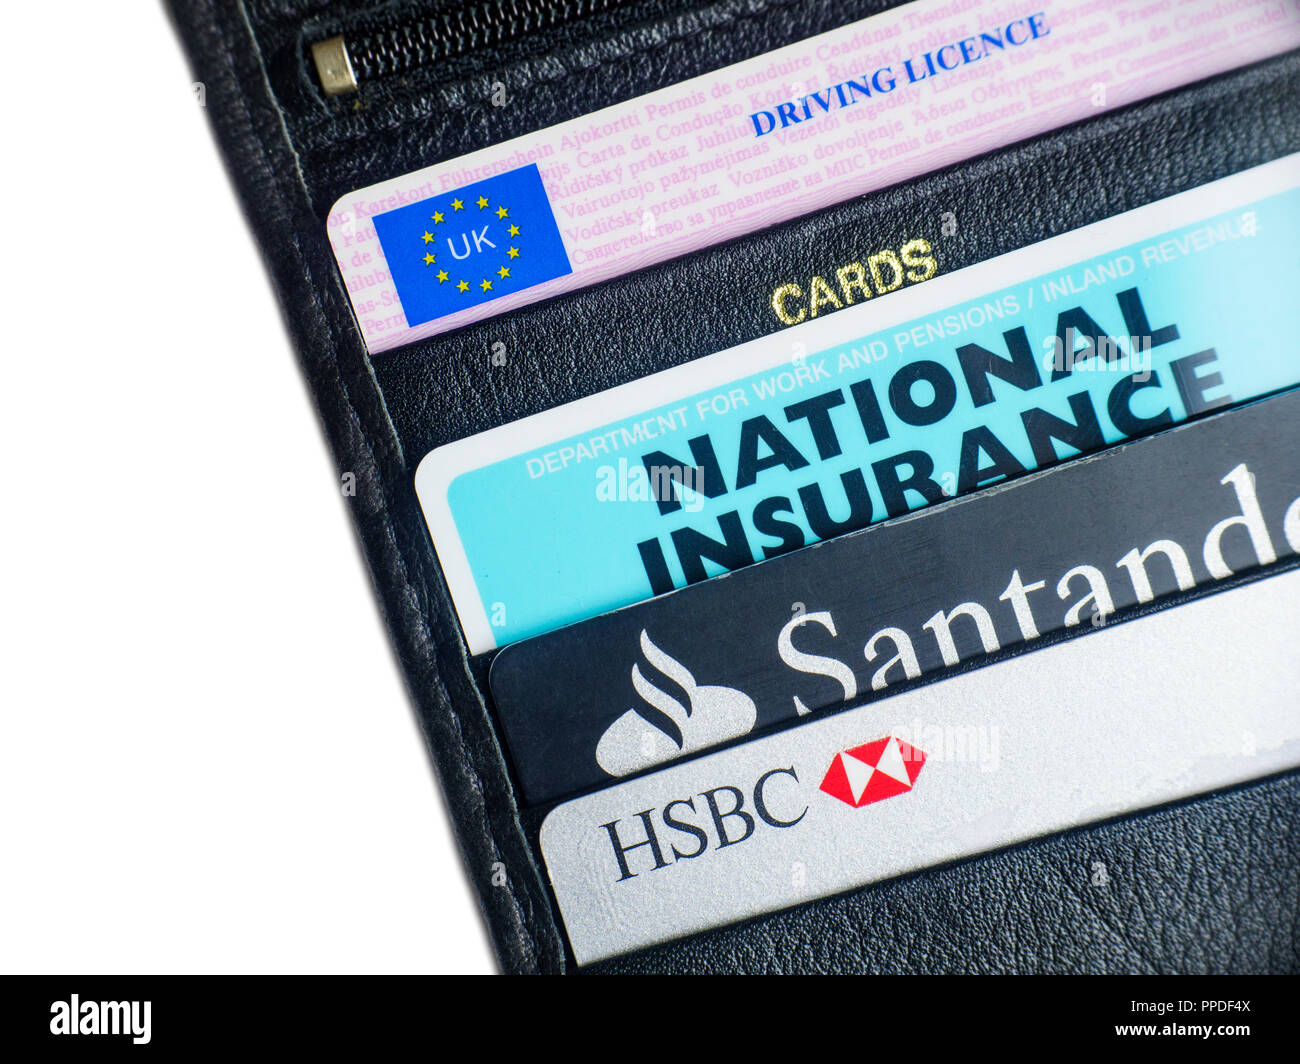 Assorted plastic cards filed in a black leather wallet - Stock Image